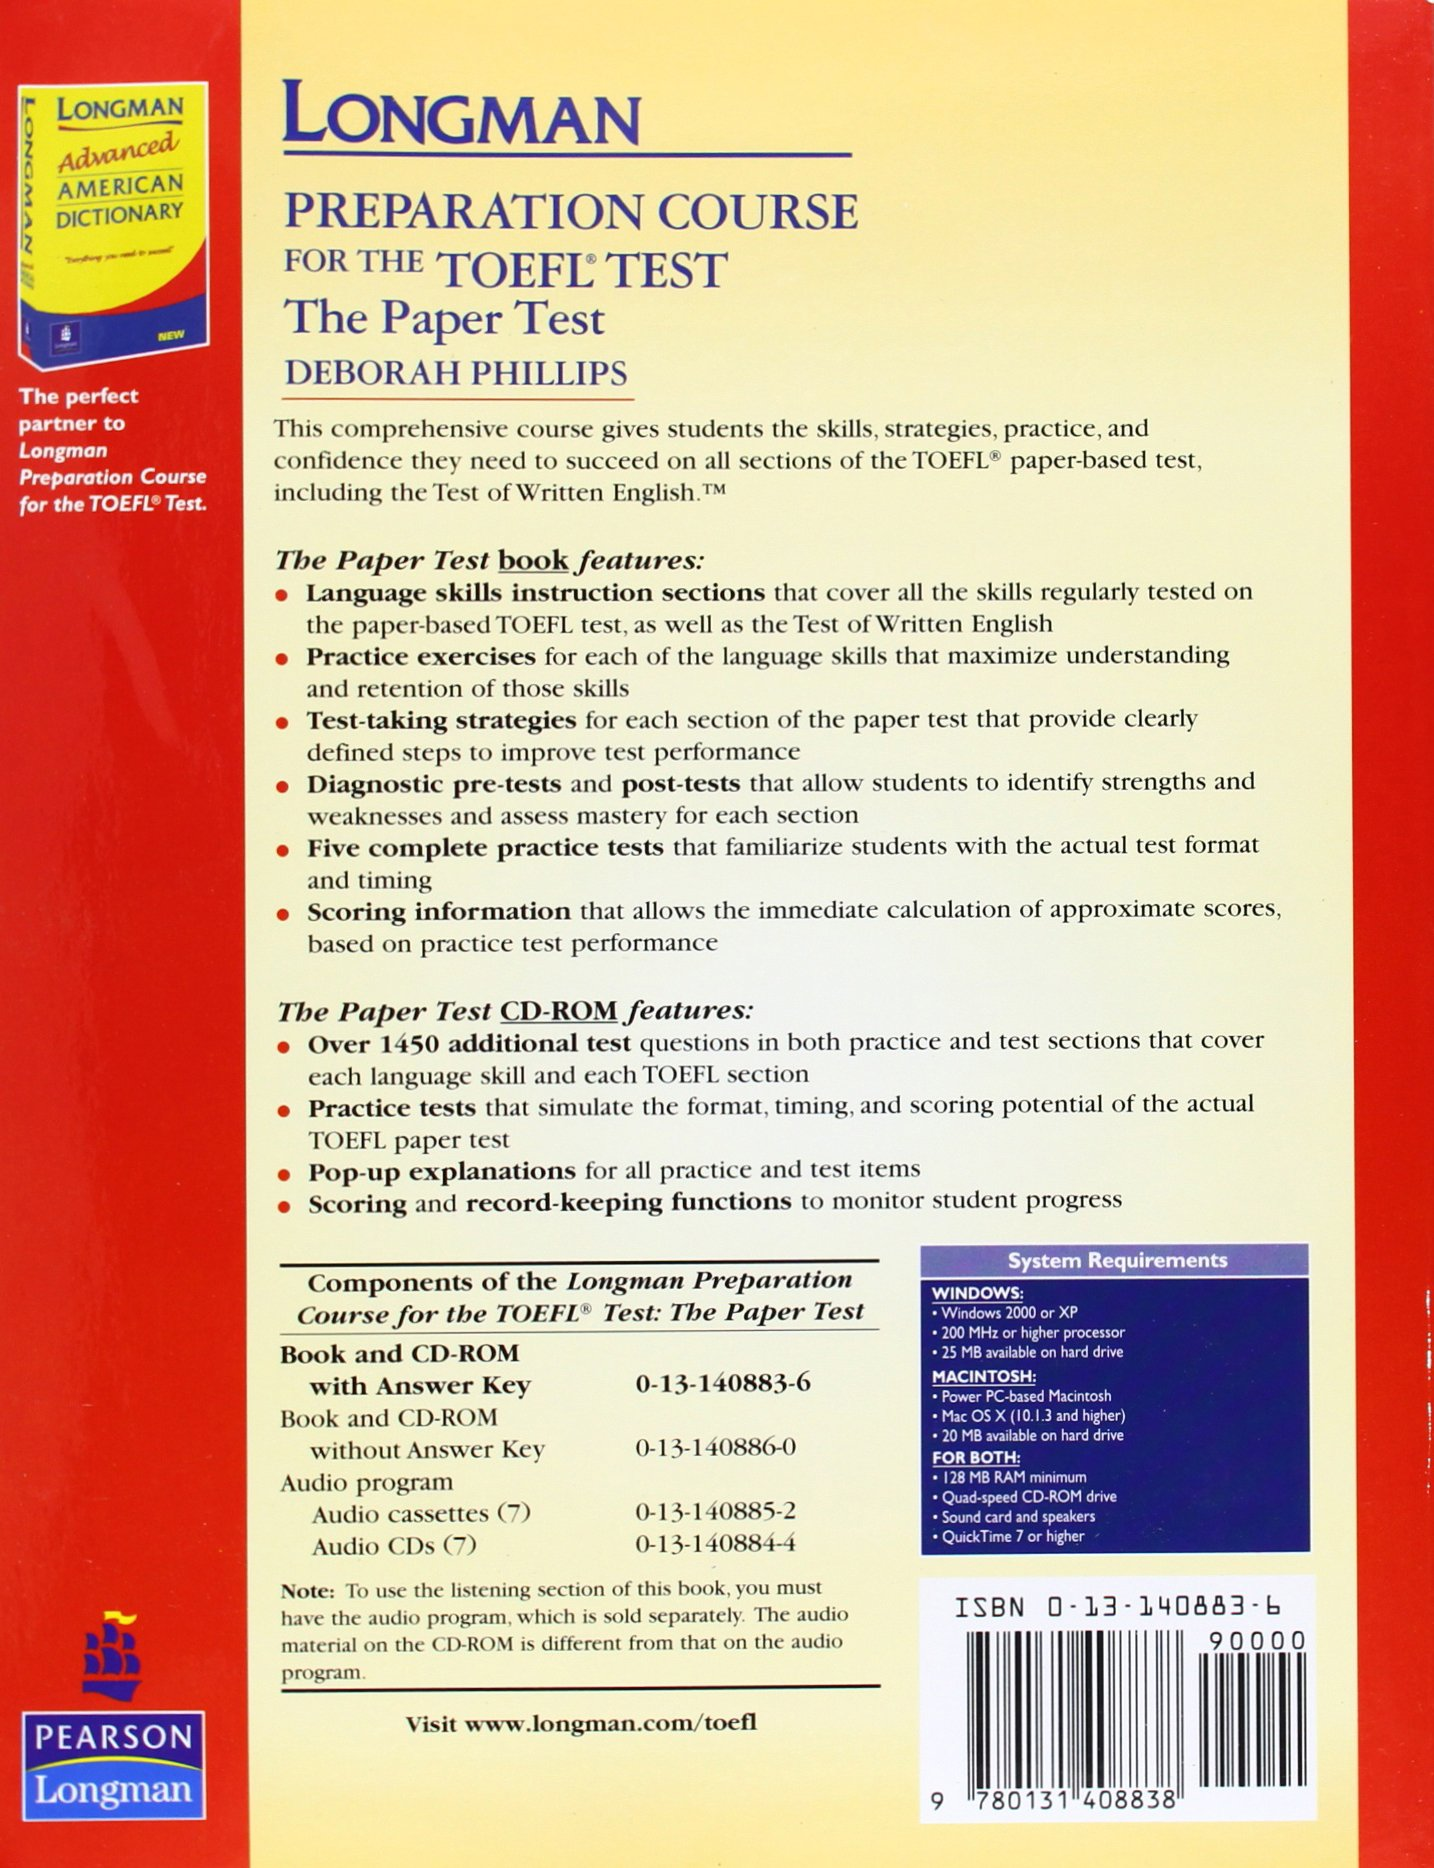 Buy Longman Preparation Course For The Toefl Test The Paper Test